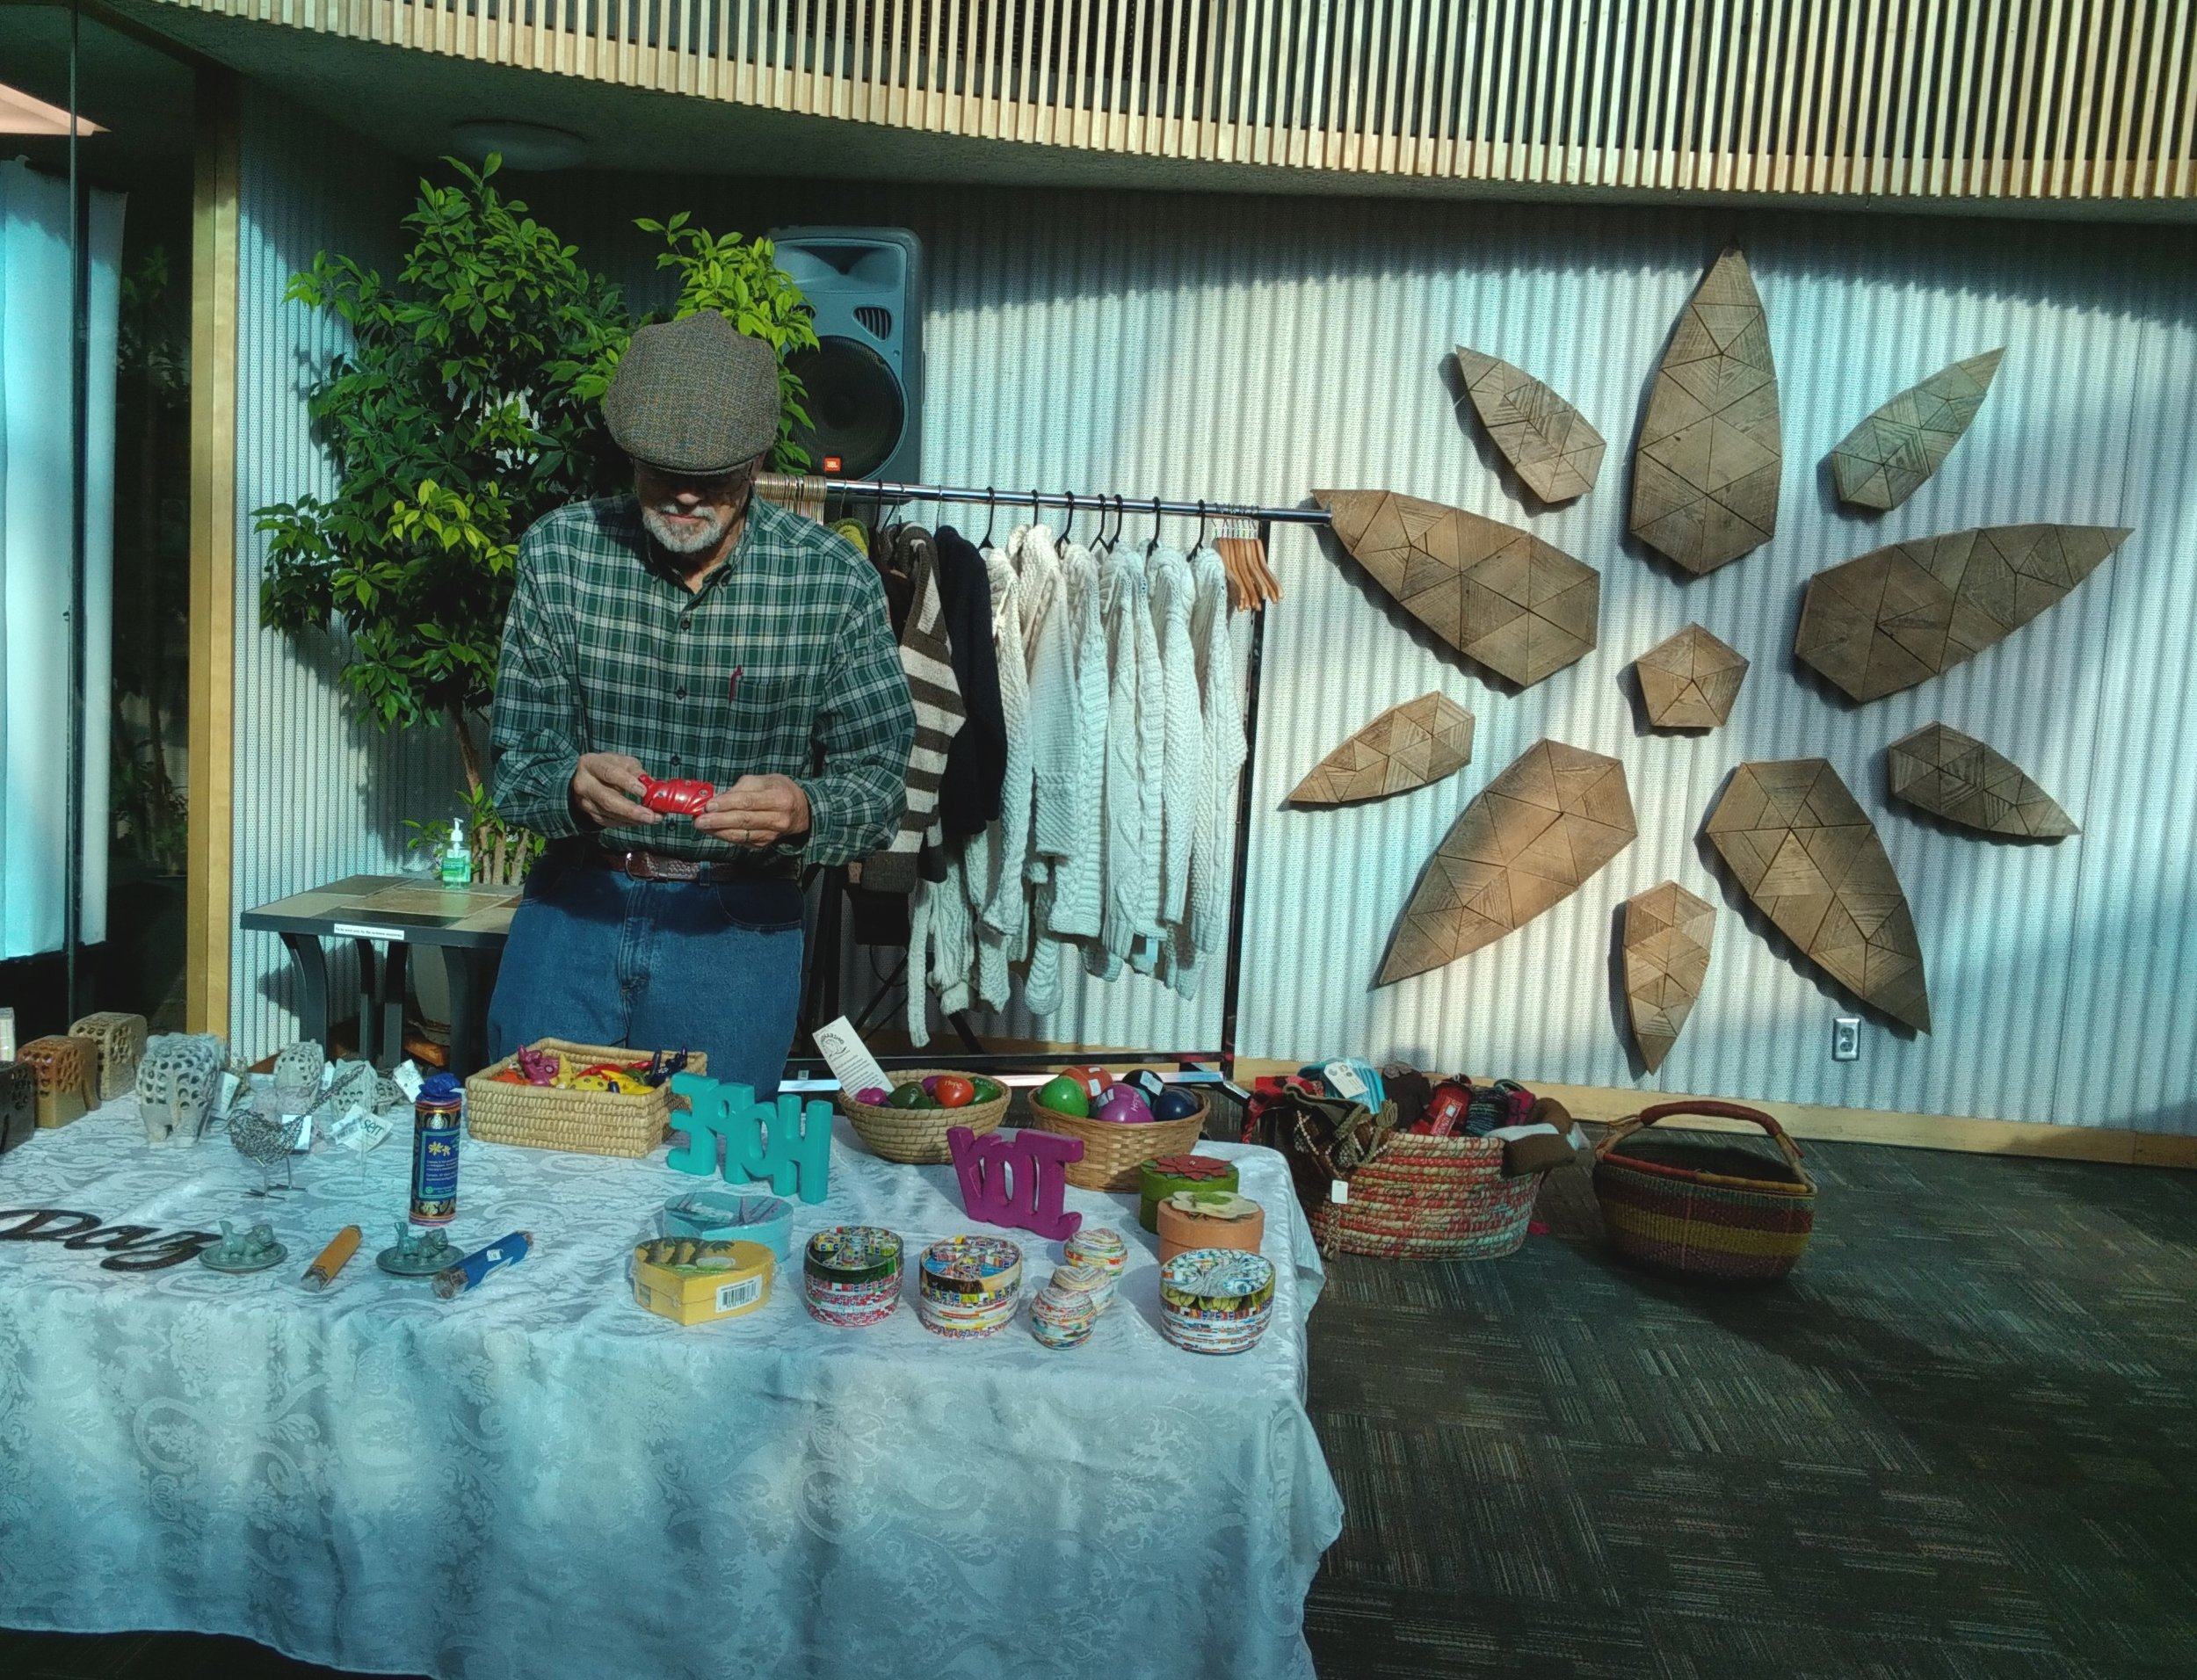 shoppers enjoyed browsing Plowsharing Crafts'Fair Trade gifts in the Fuller Dome